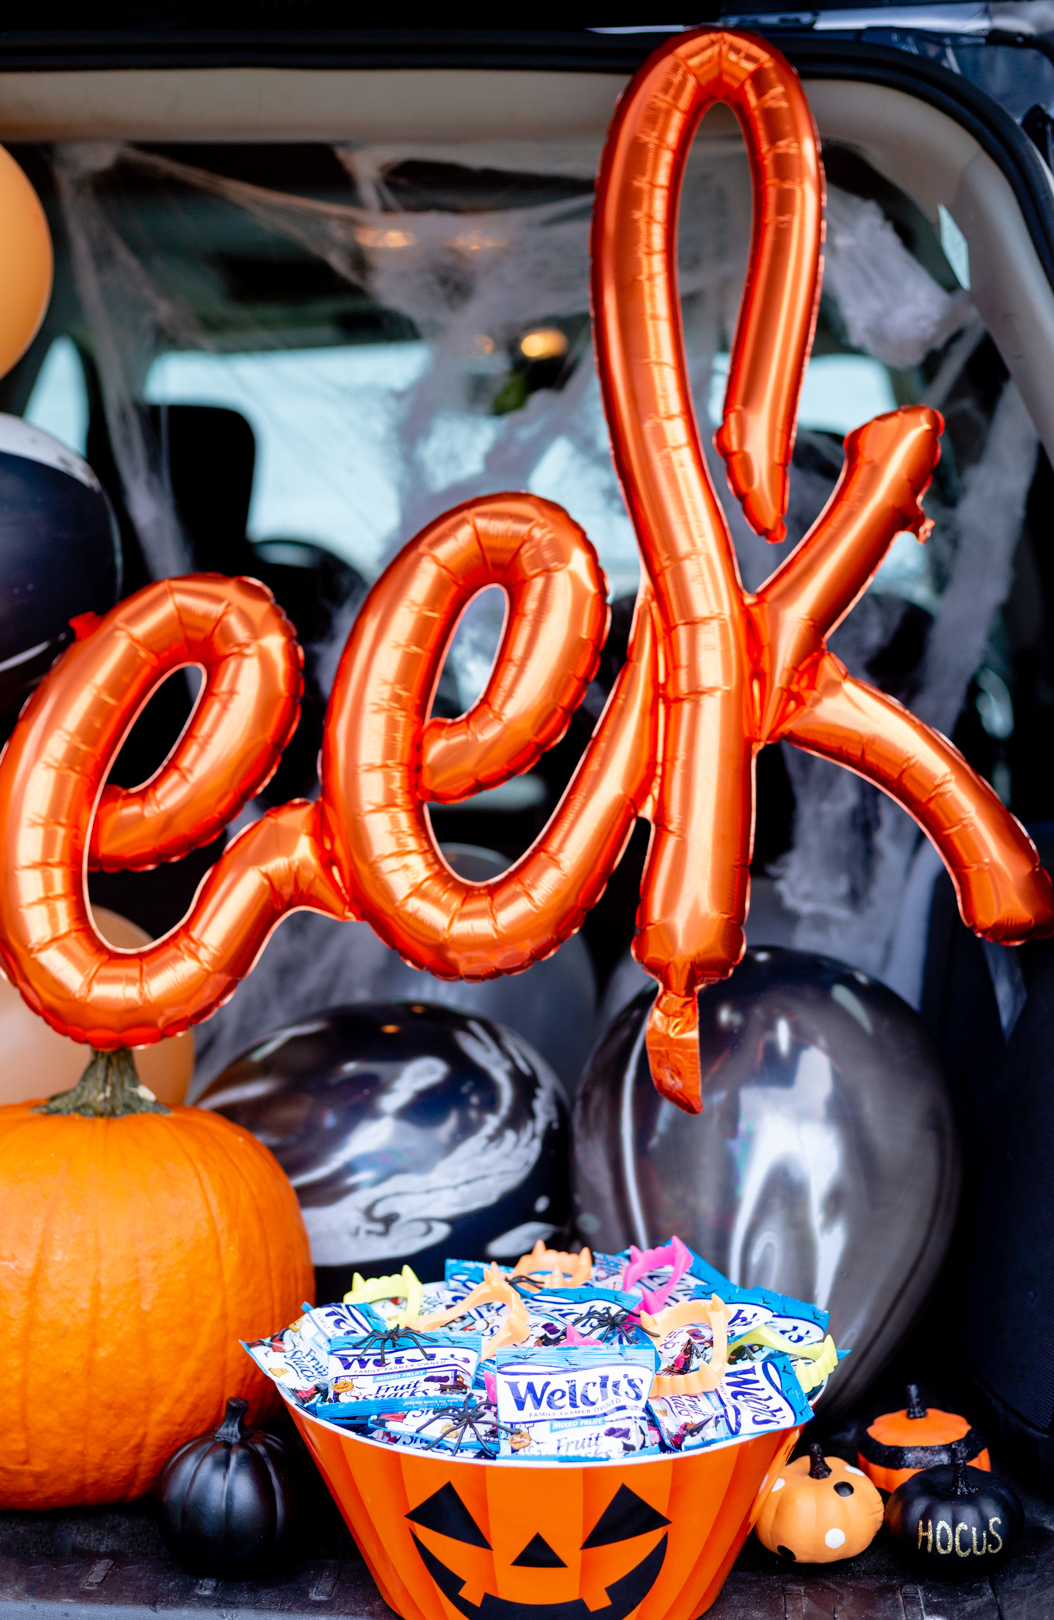 Trunk or Treat ideas with Halloween Welch's Fruit Snacks